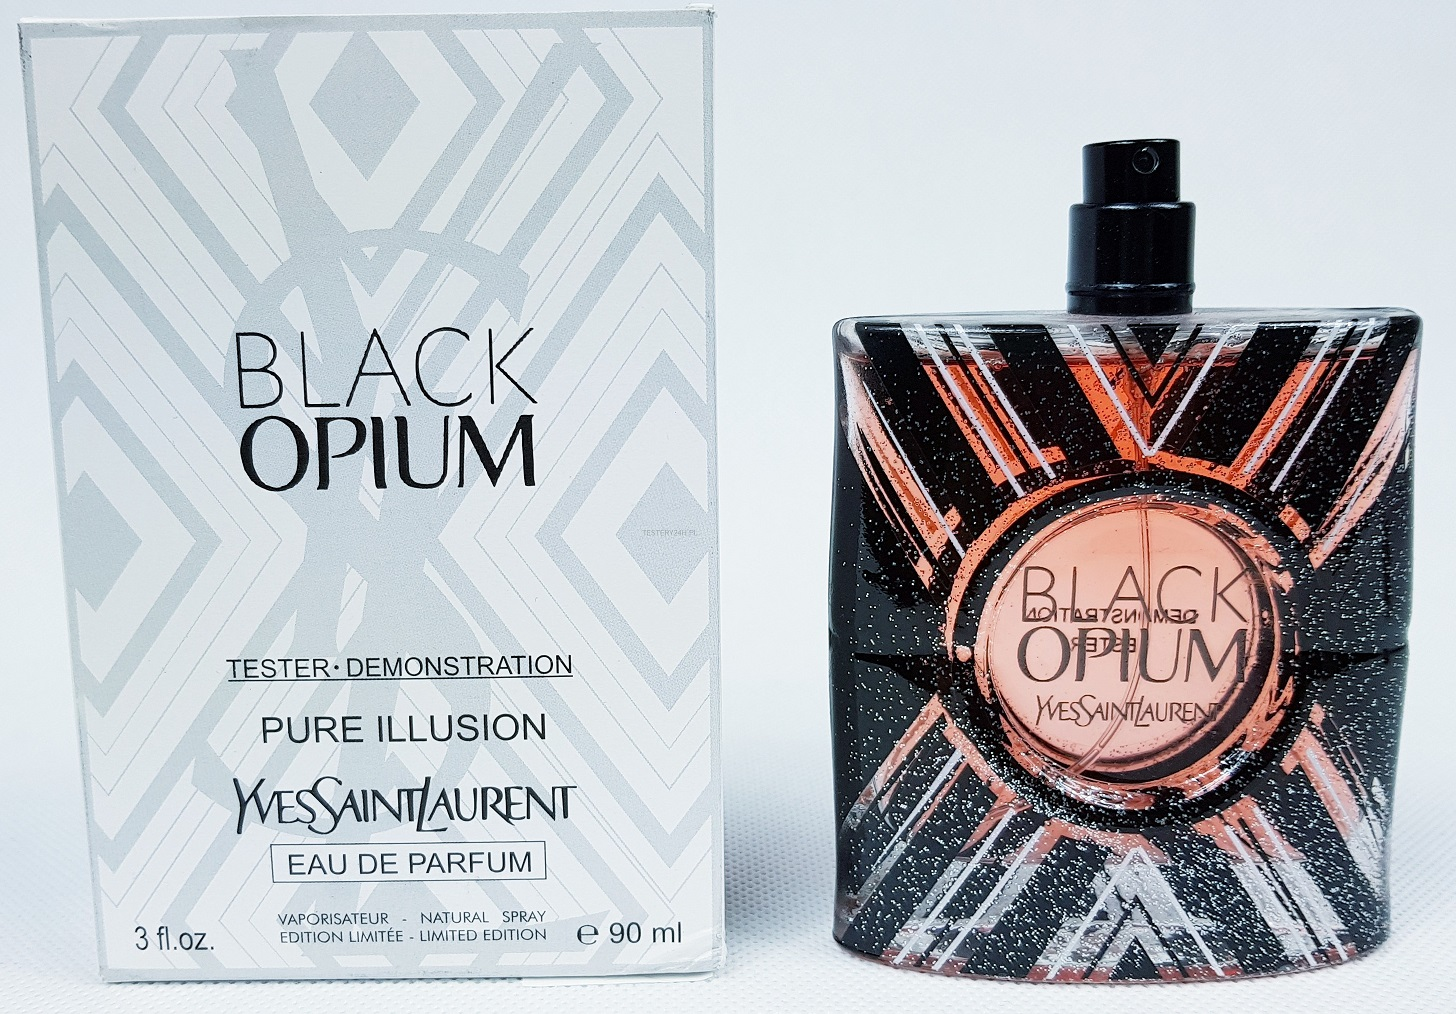 Yves Saint Laurent Black Opium Pure Illusion, 90ml, Parfémovaná voda - Tester